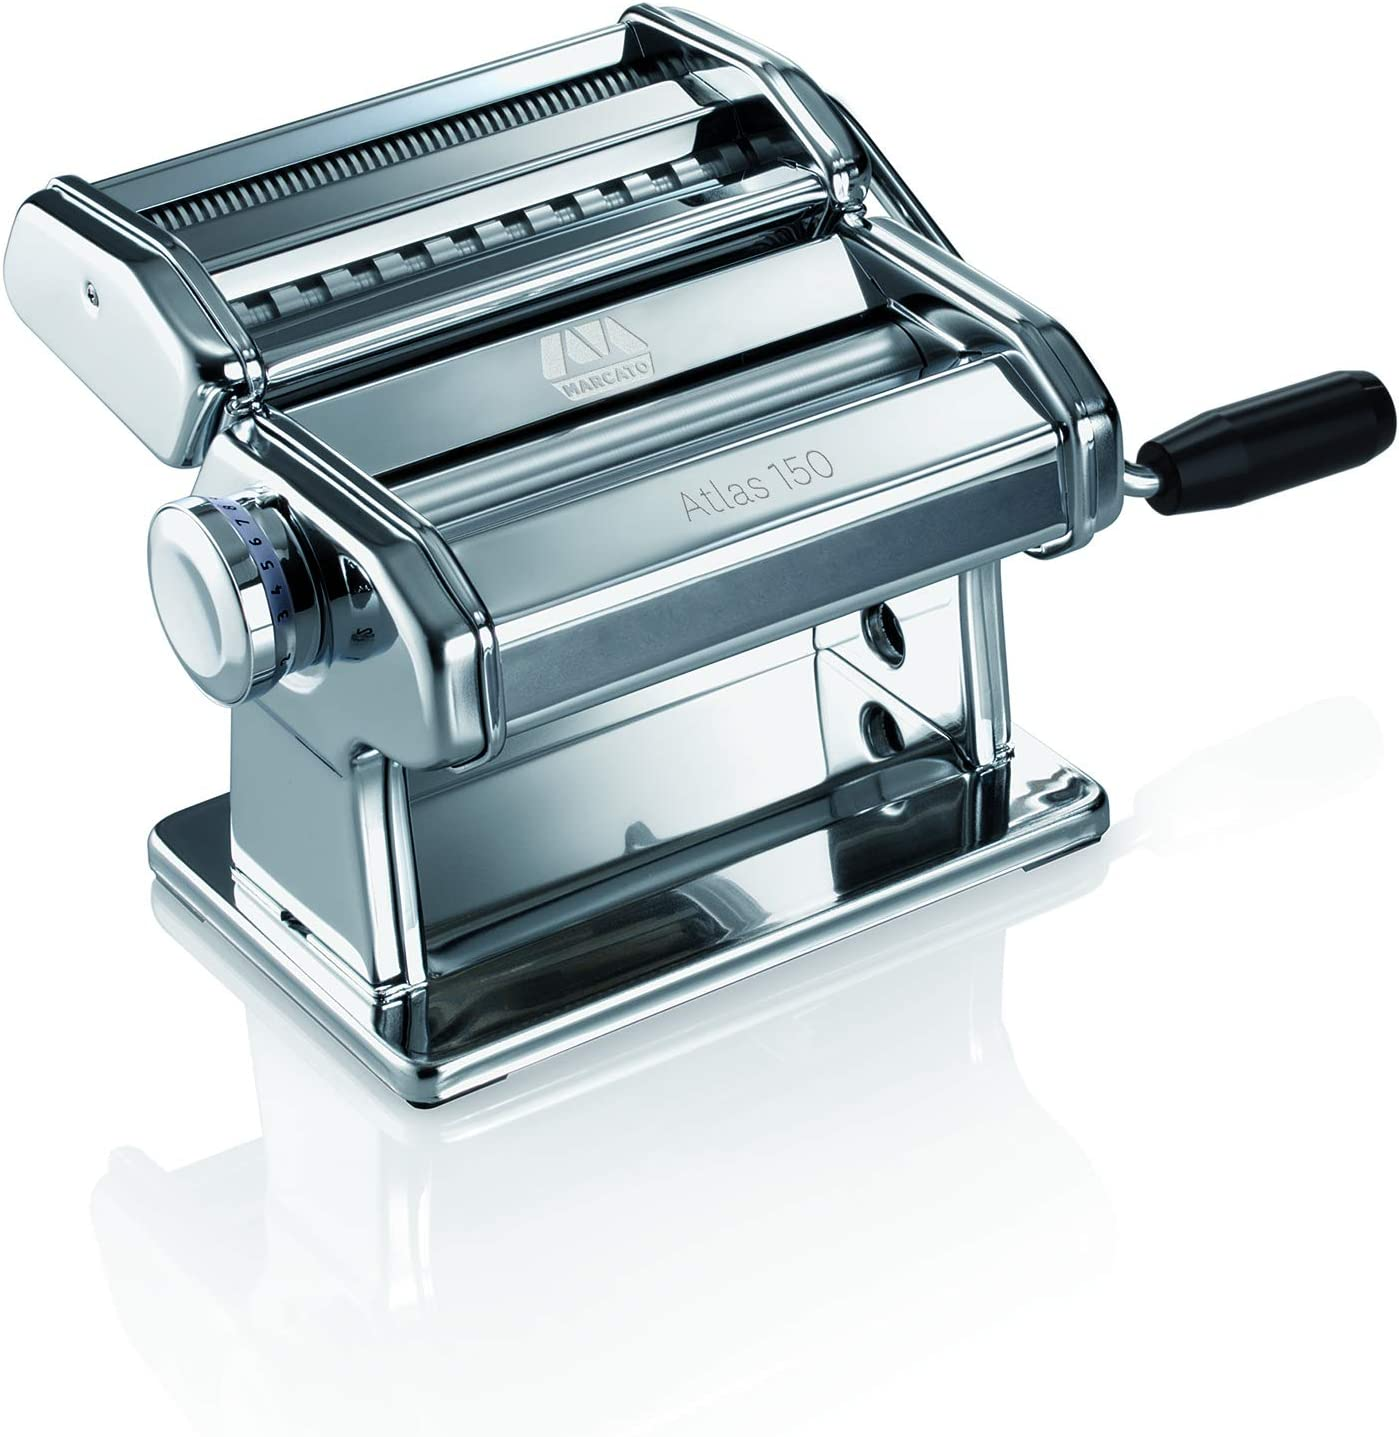 Top 6 Best Pasta Makers (2020 Reviews & Guide) 1